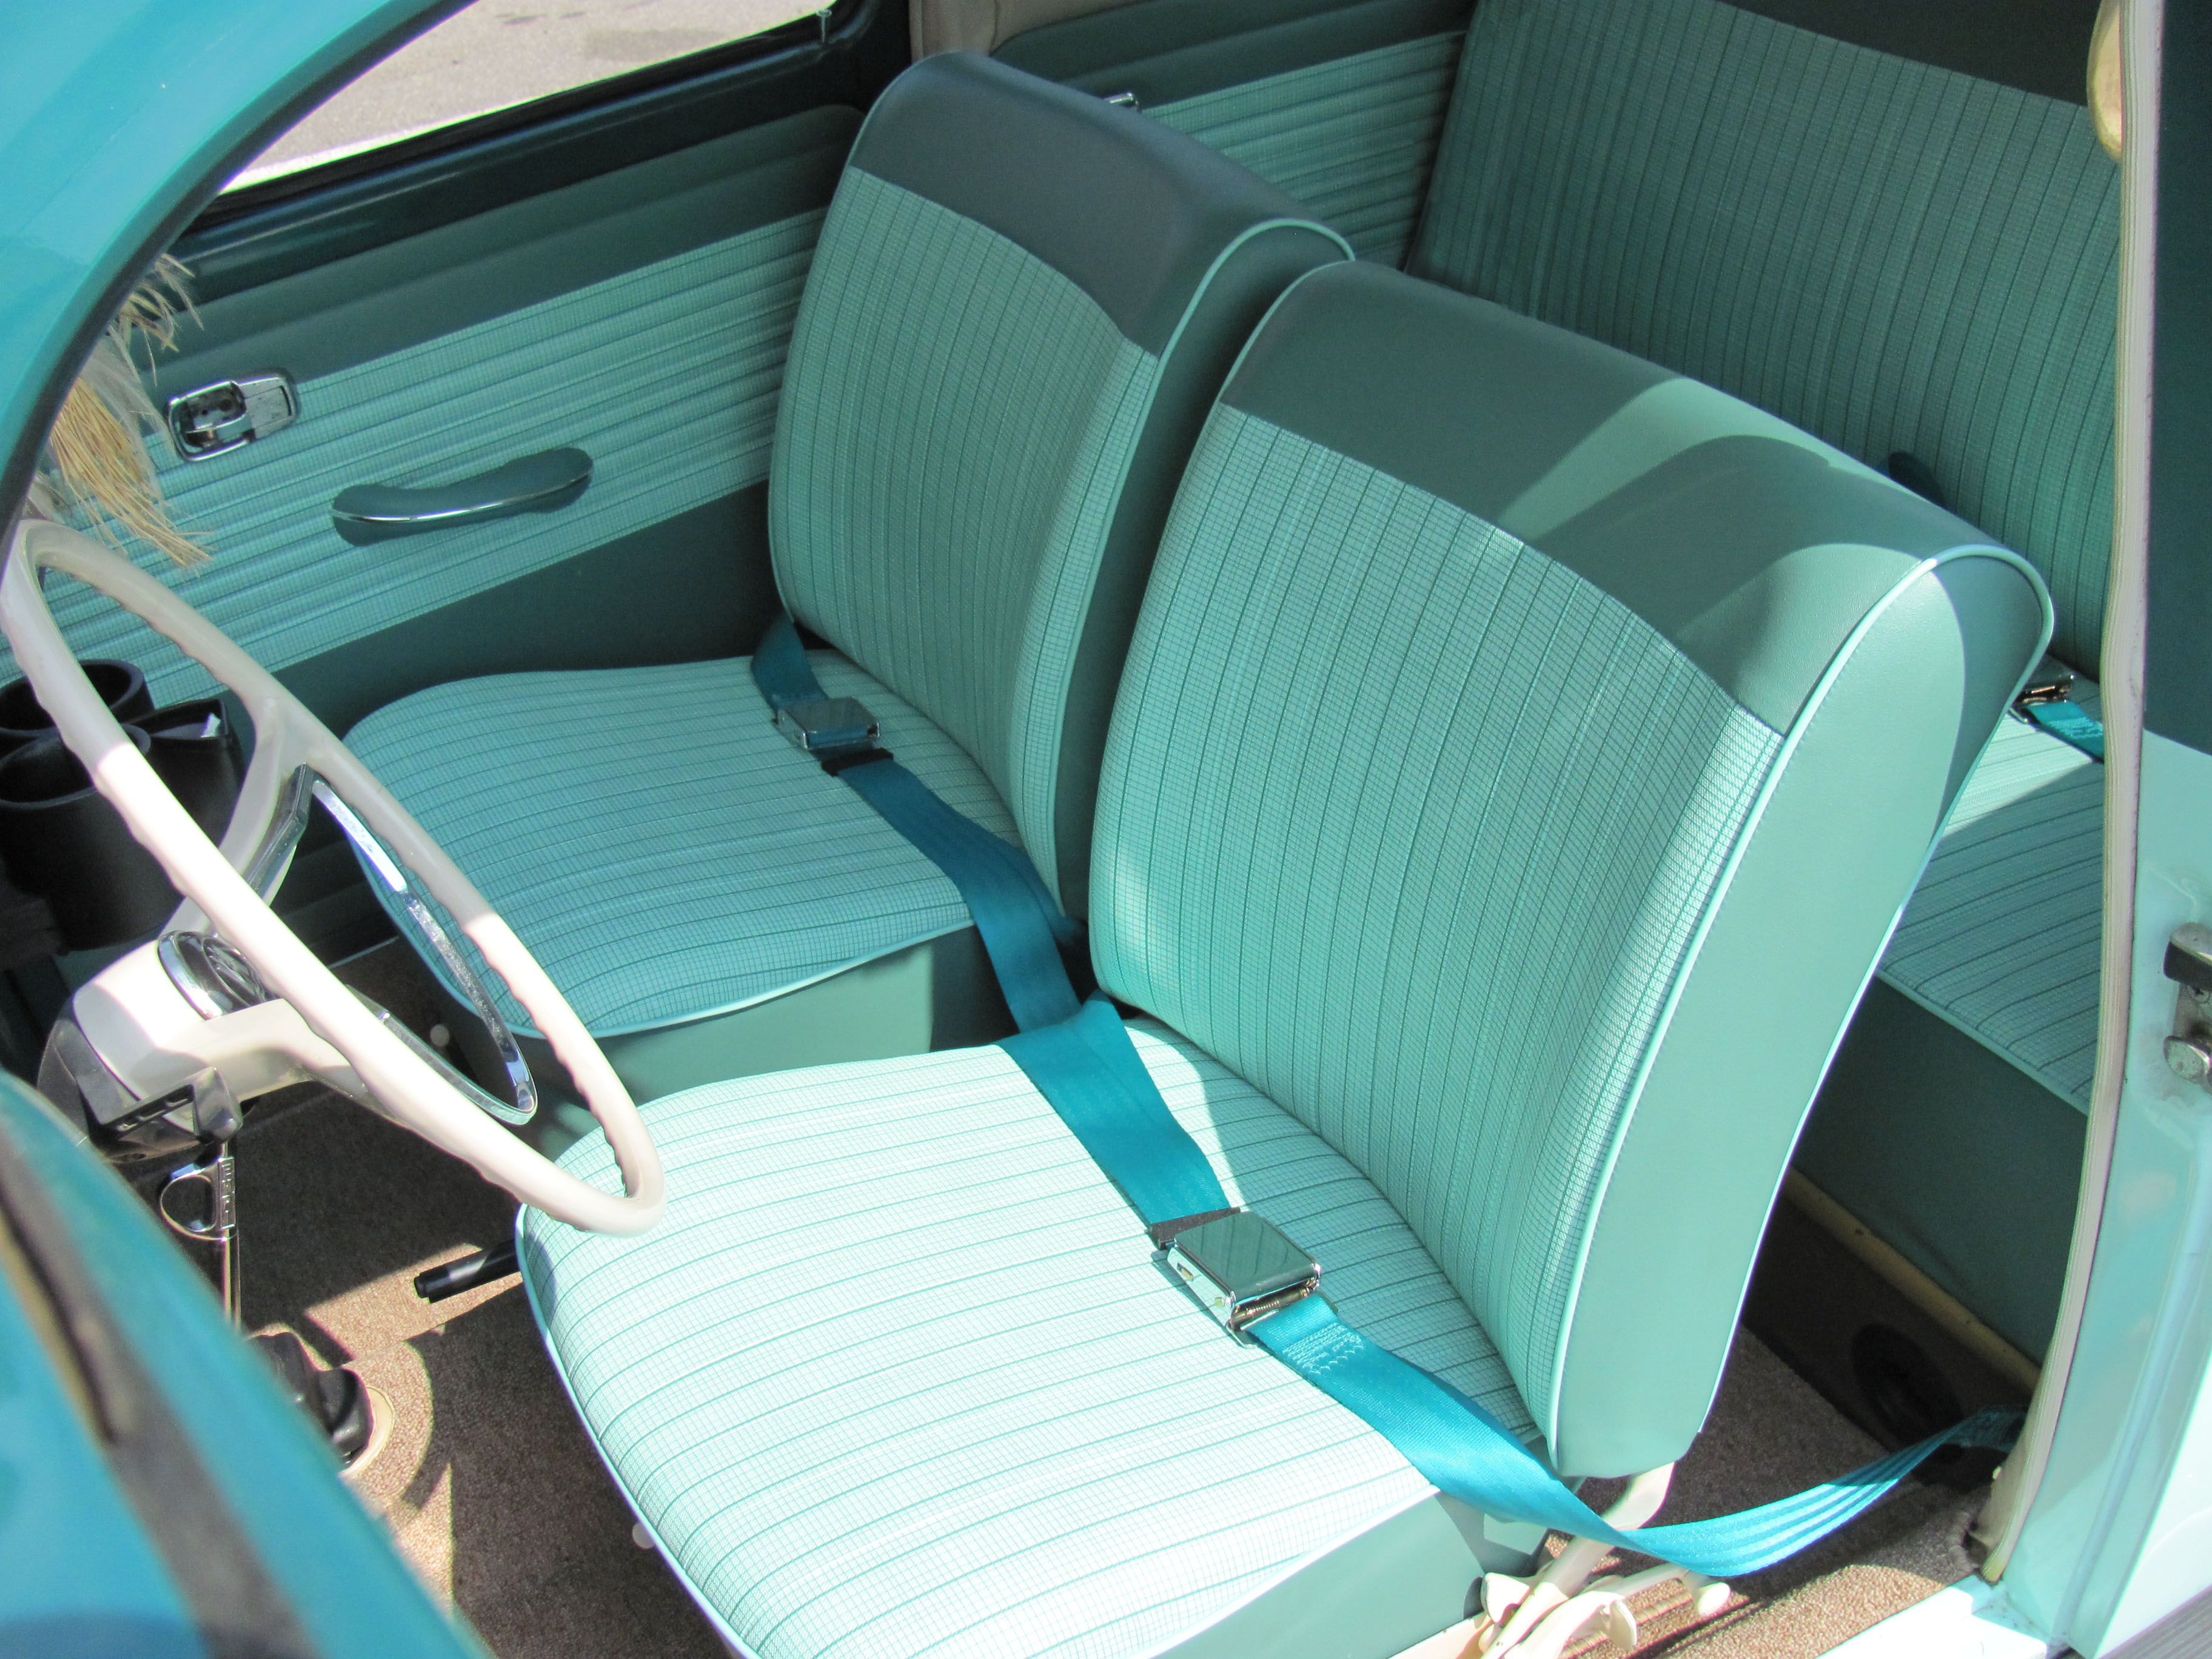 1965 vw bug seat covers vw seat pads jbugs. Black Bedroom Furniture Sets. Home Design Ideas